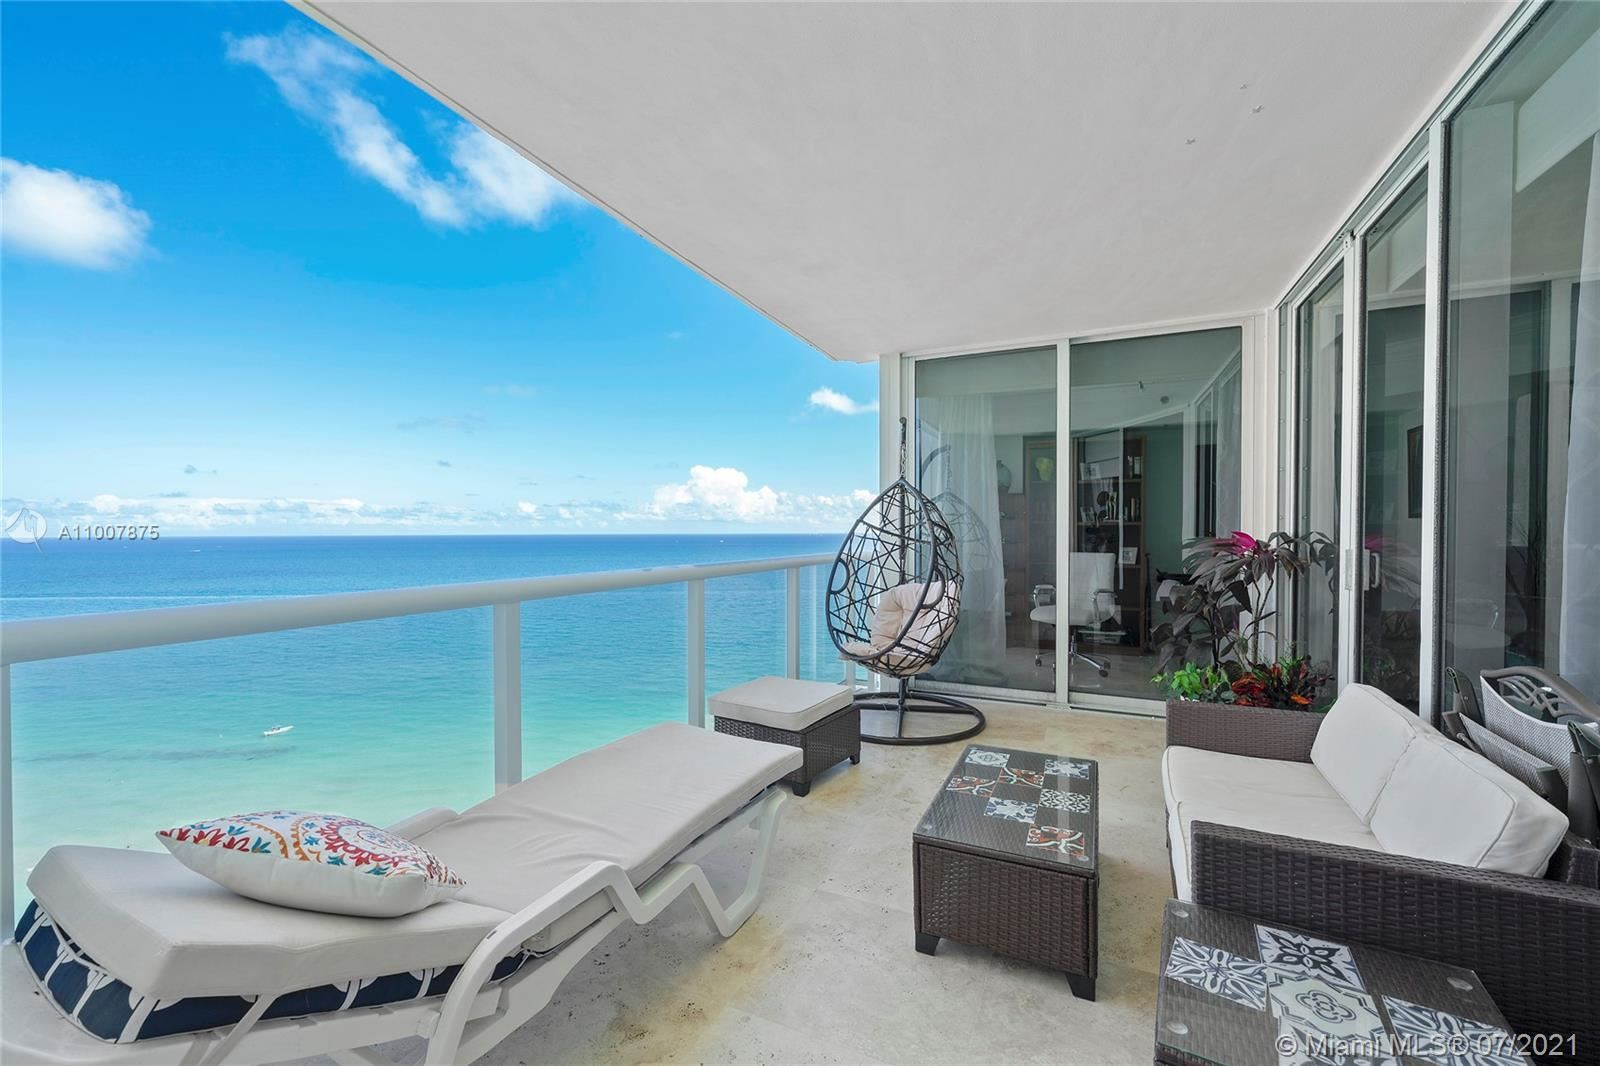 19111 Collins Ave #2607, Sunny Isles, FL 33160 - #: A11007875